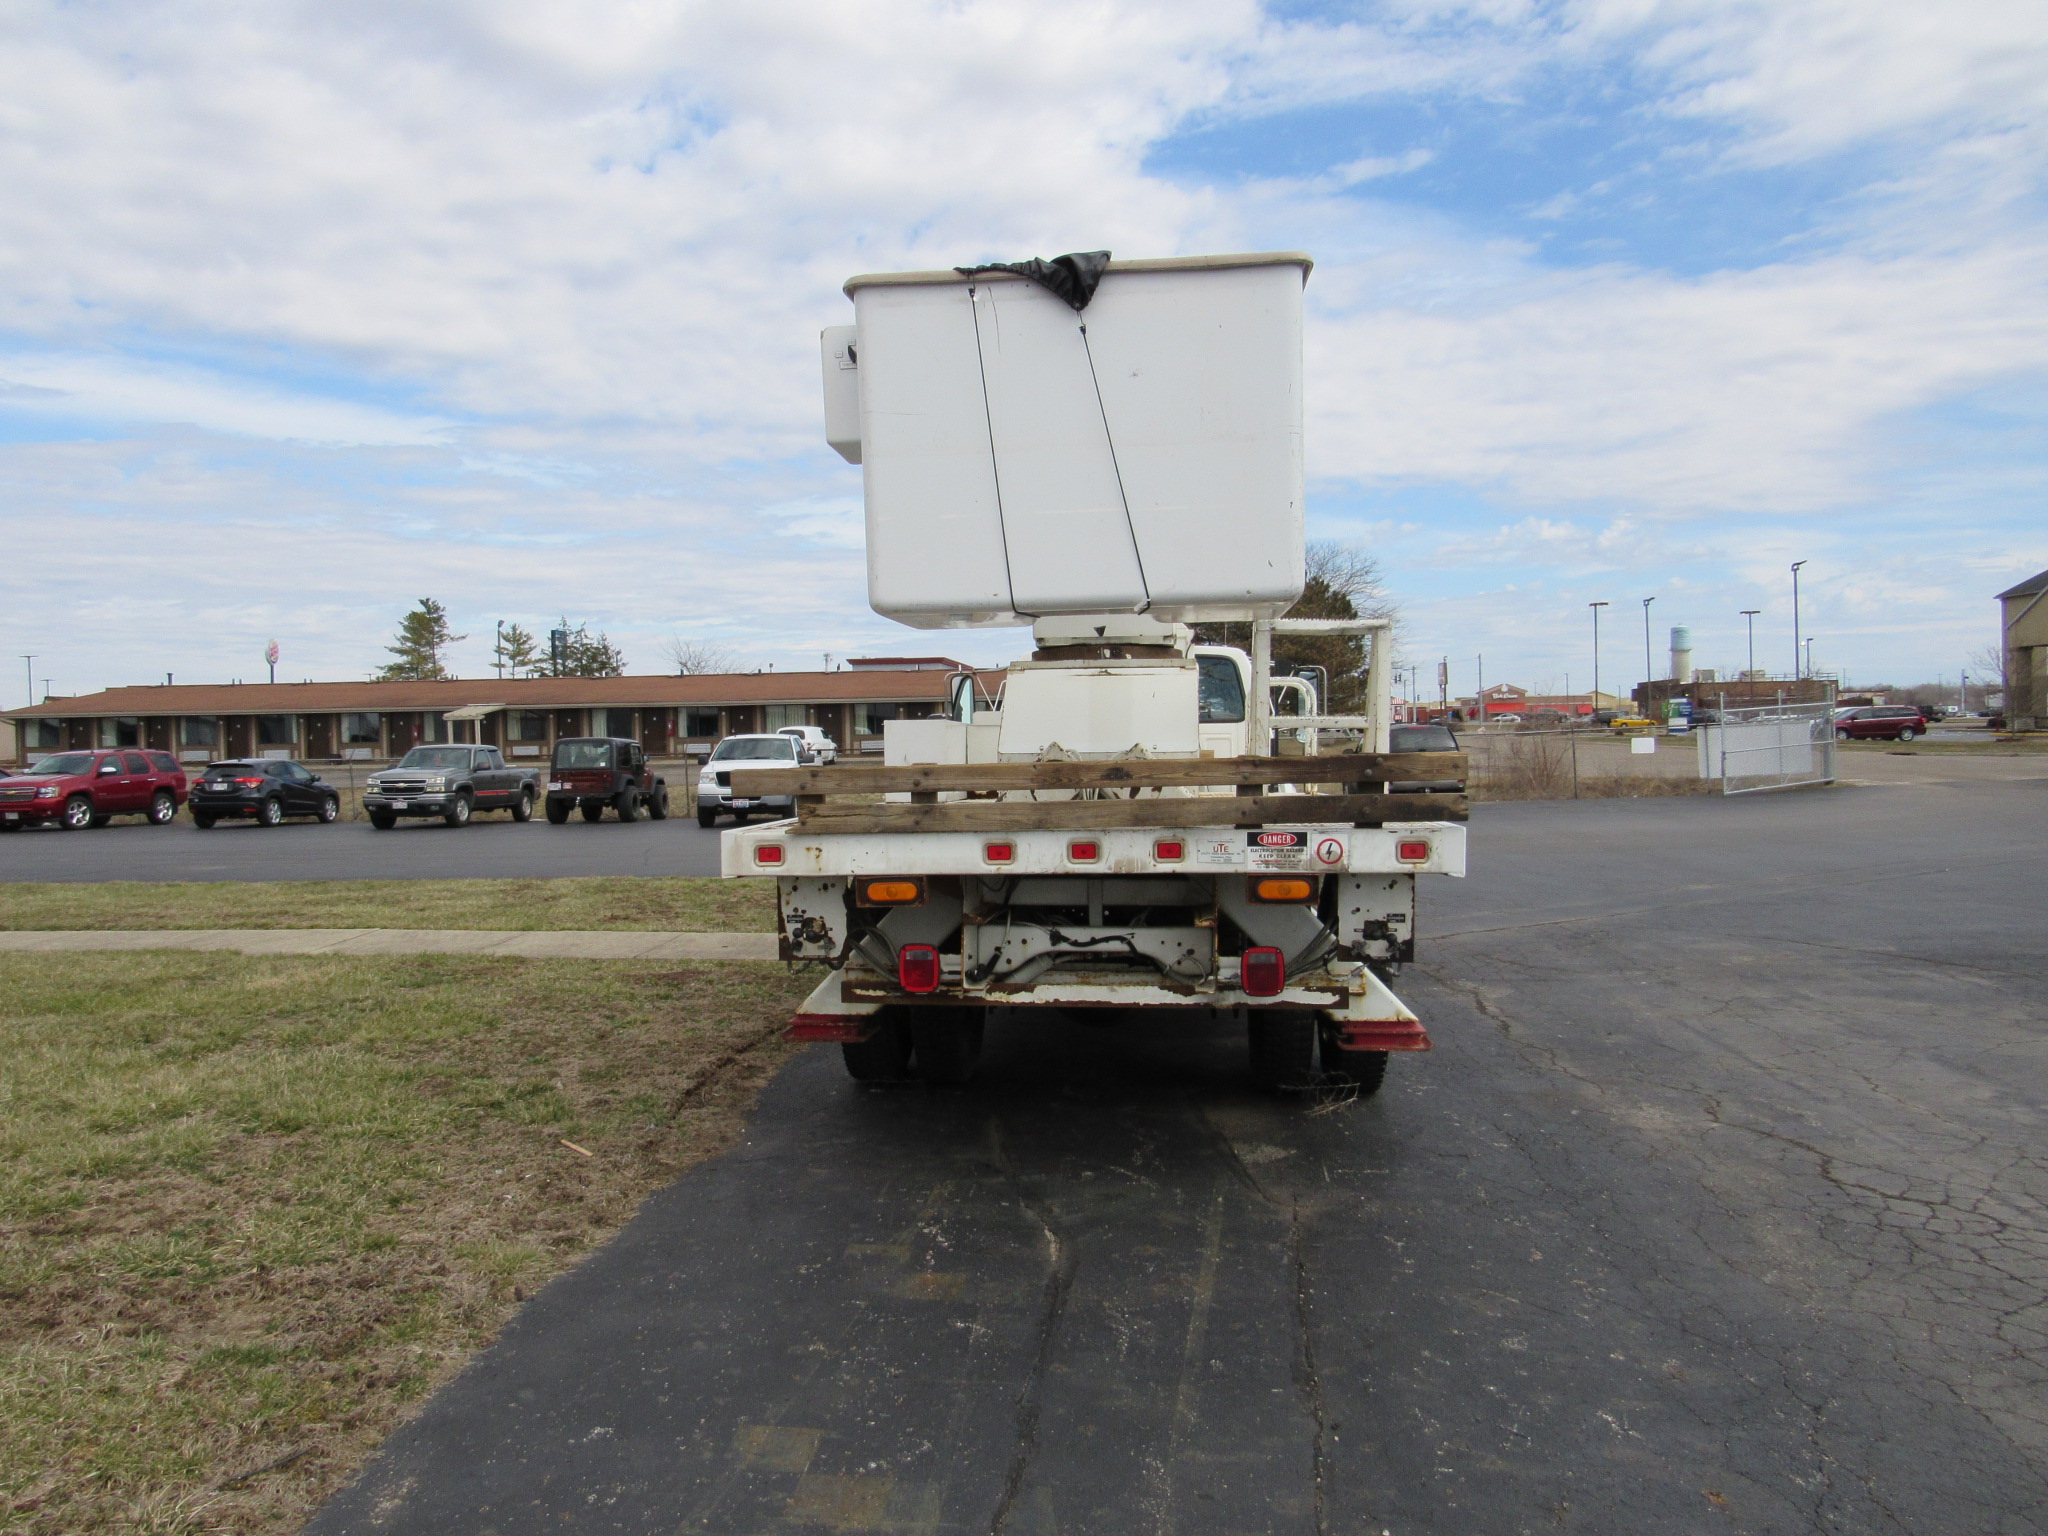 Teco V5 -55 rear view of bucket